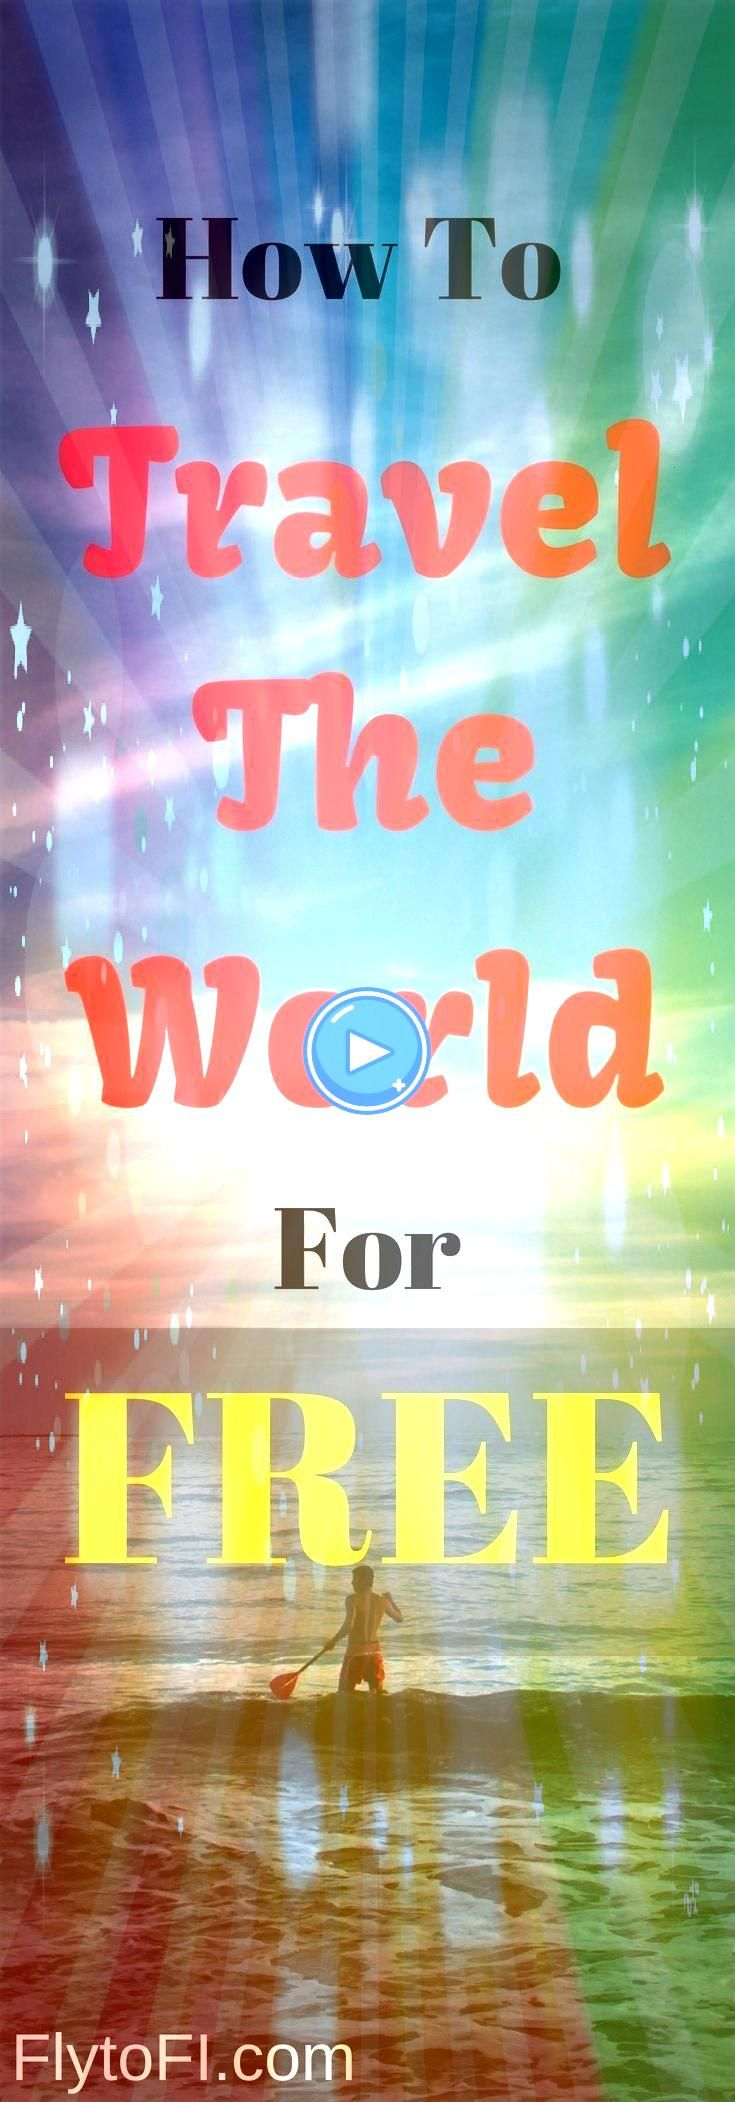 cards travel Want to learn how to travel the world for free Enter the world of credit card t credit cards travel Want to learn how to travel the world for free Enter the...